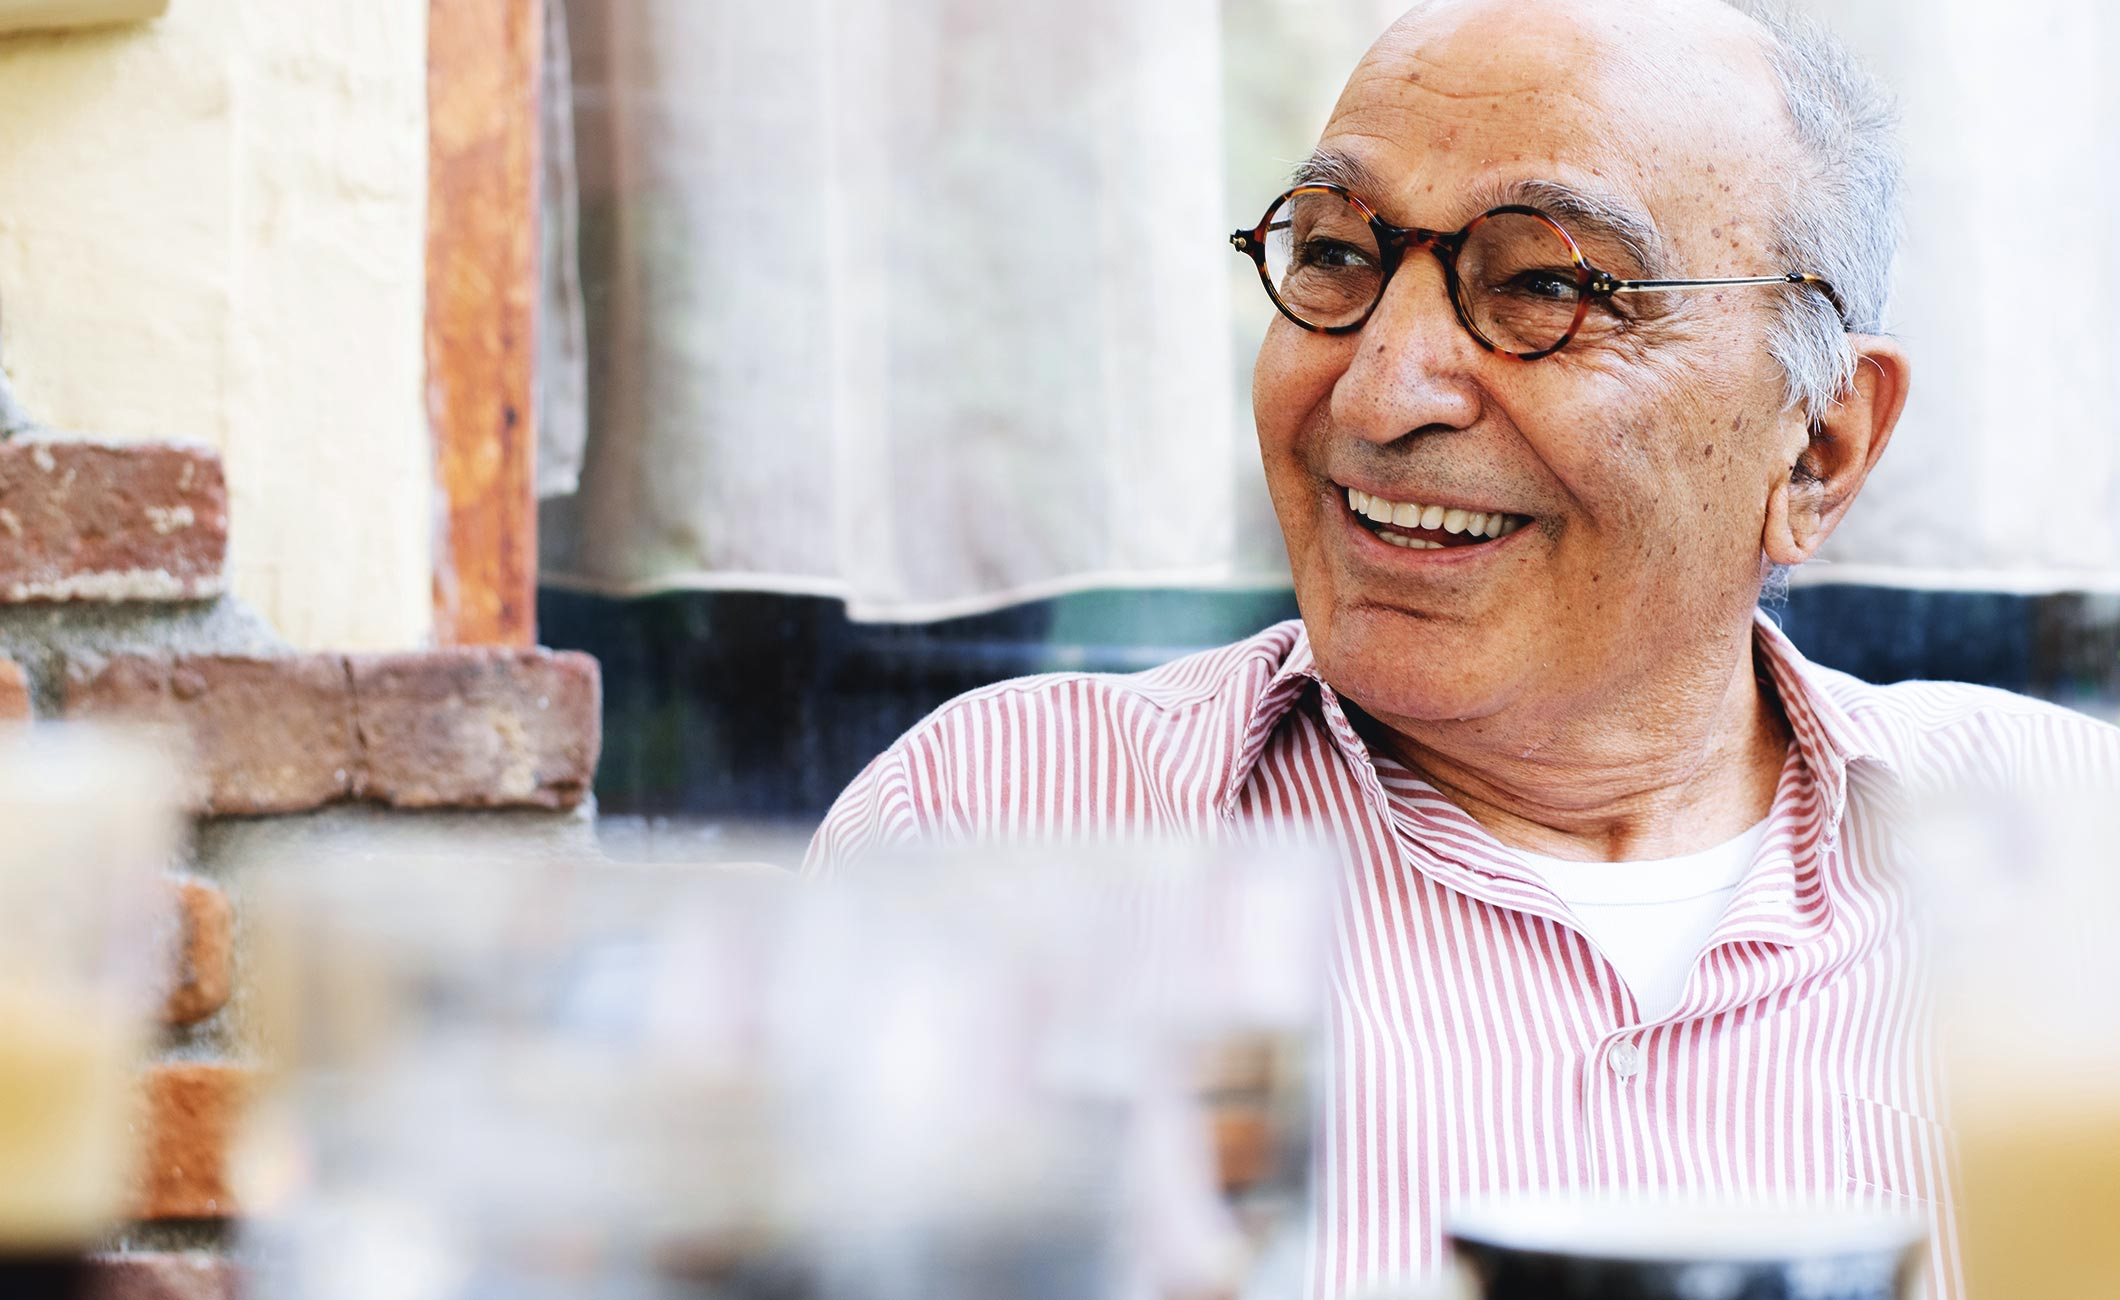 older man with glasses smiling